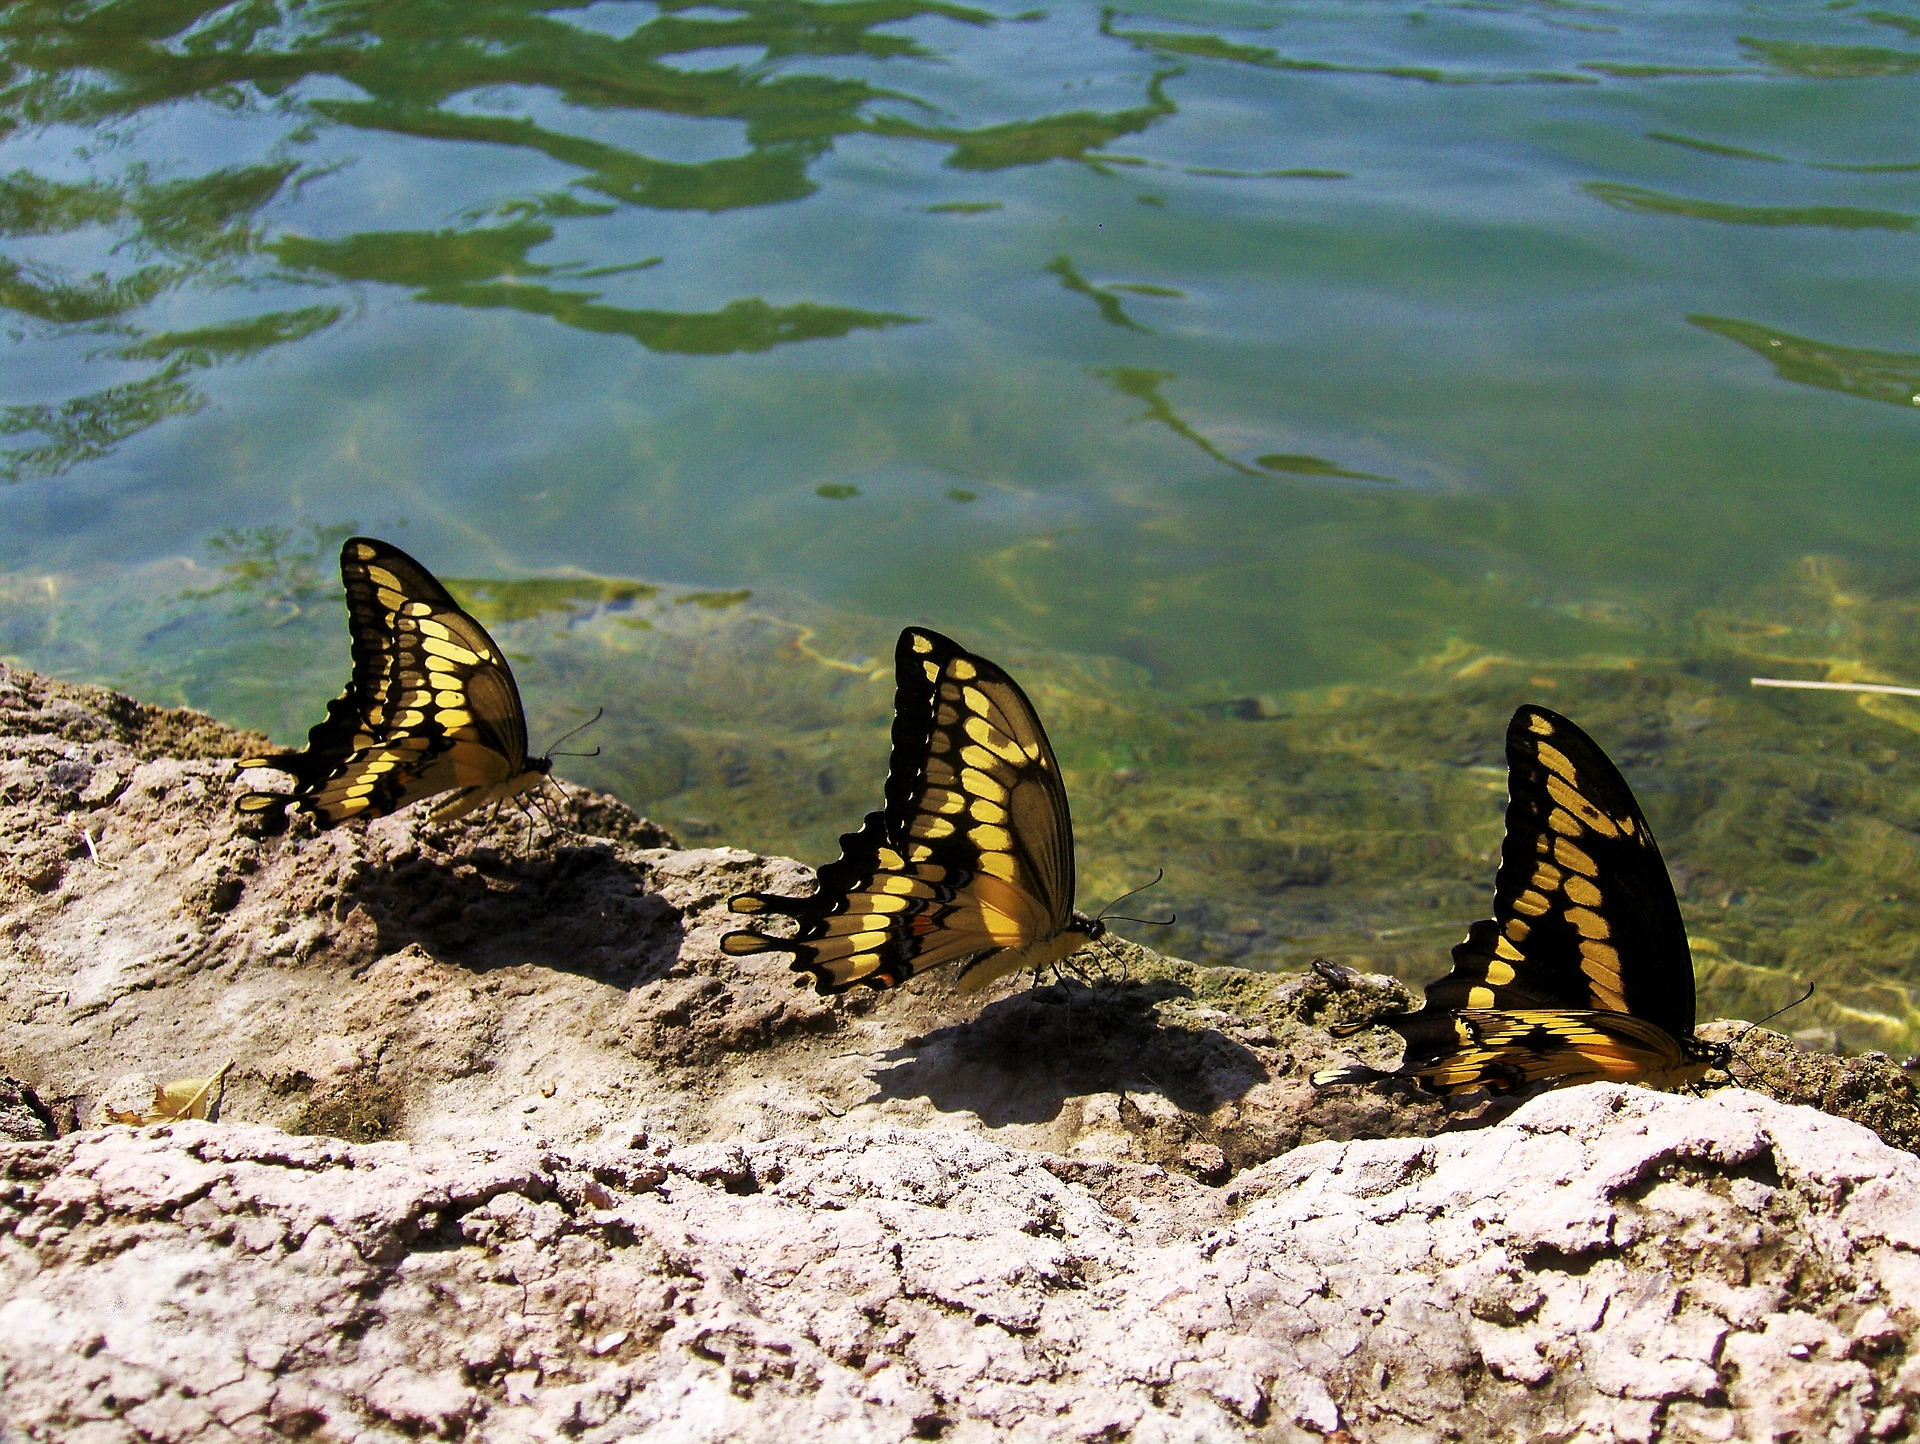 Butterflies drinking at lake's edge.